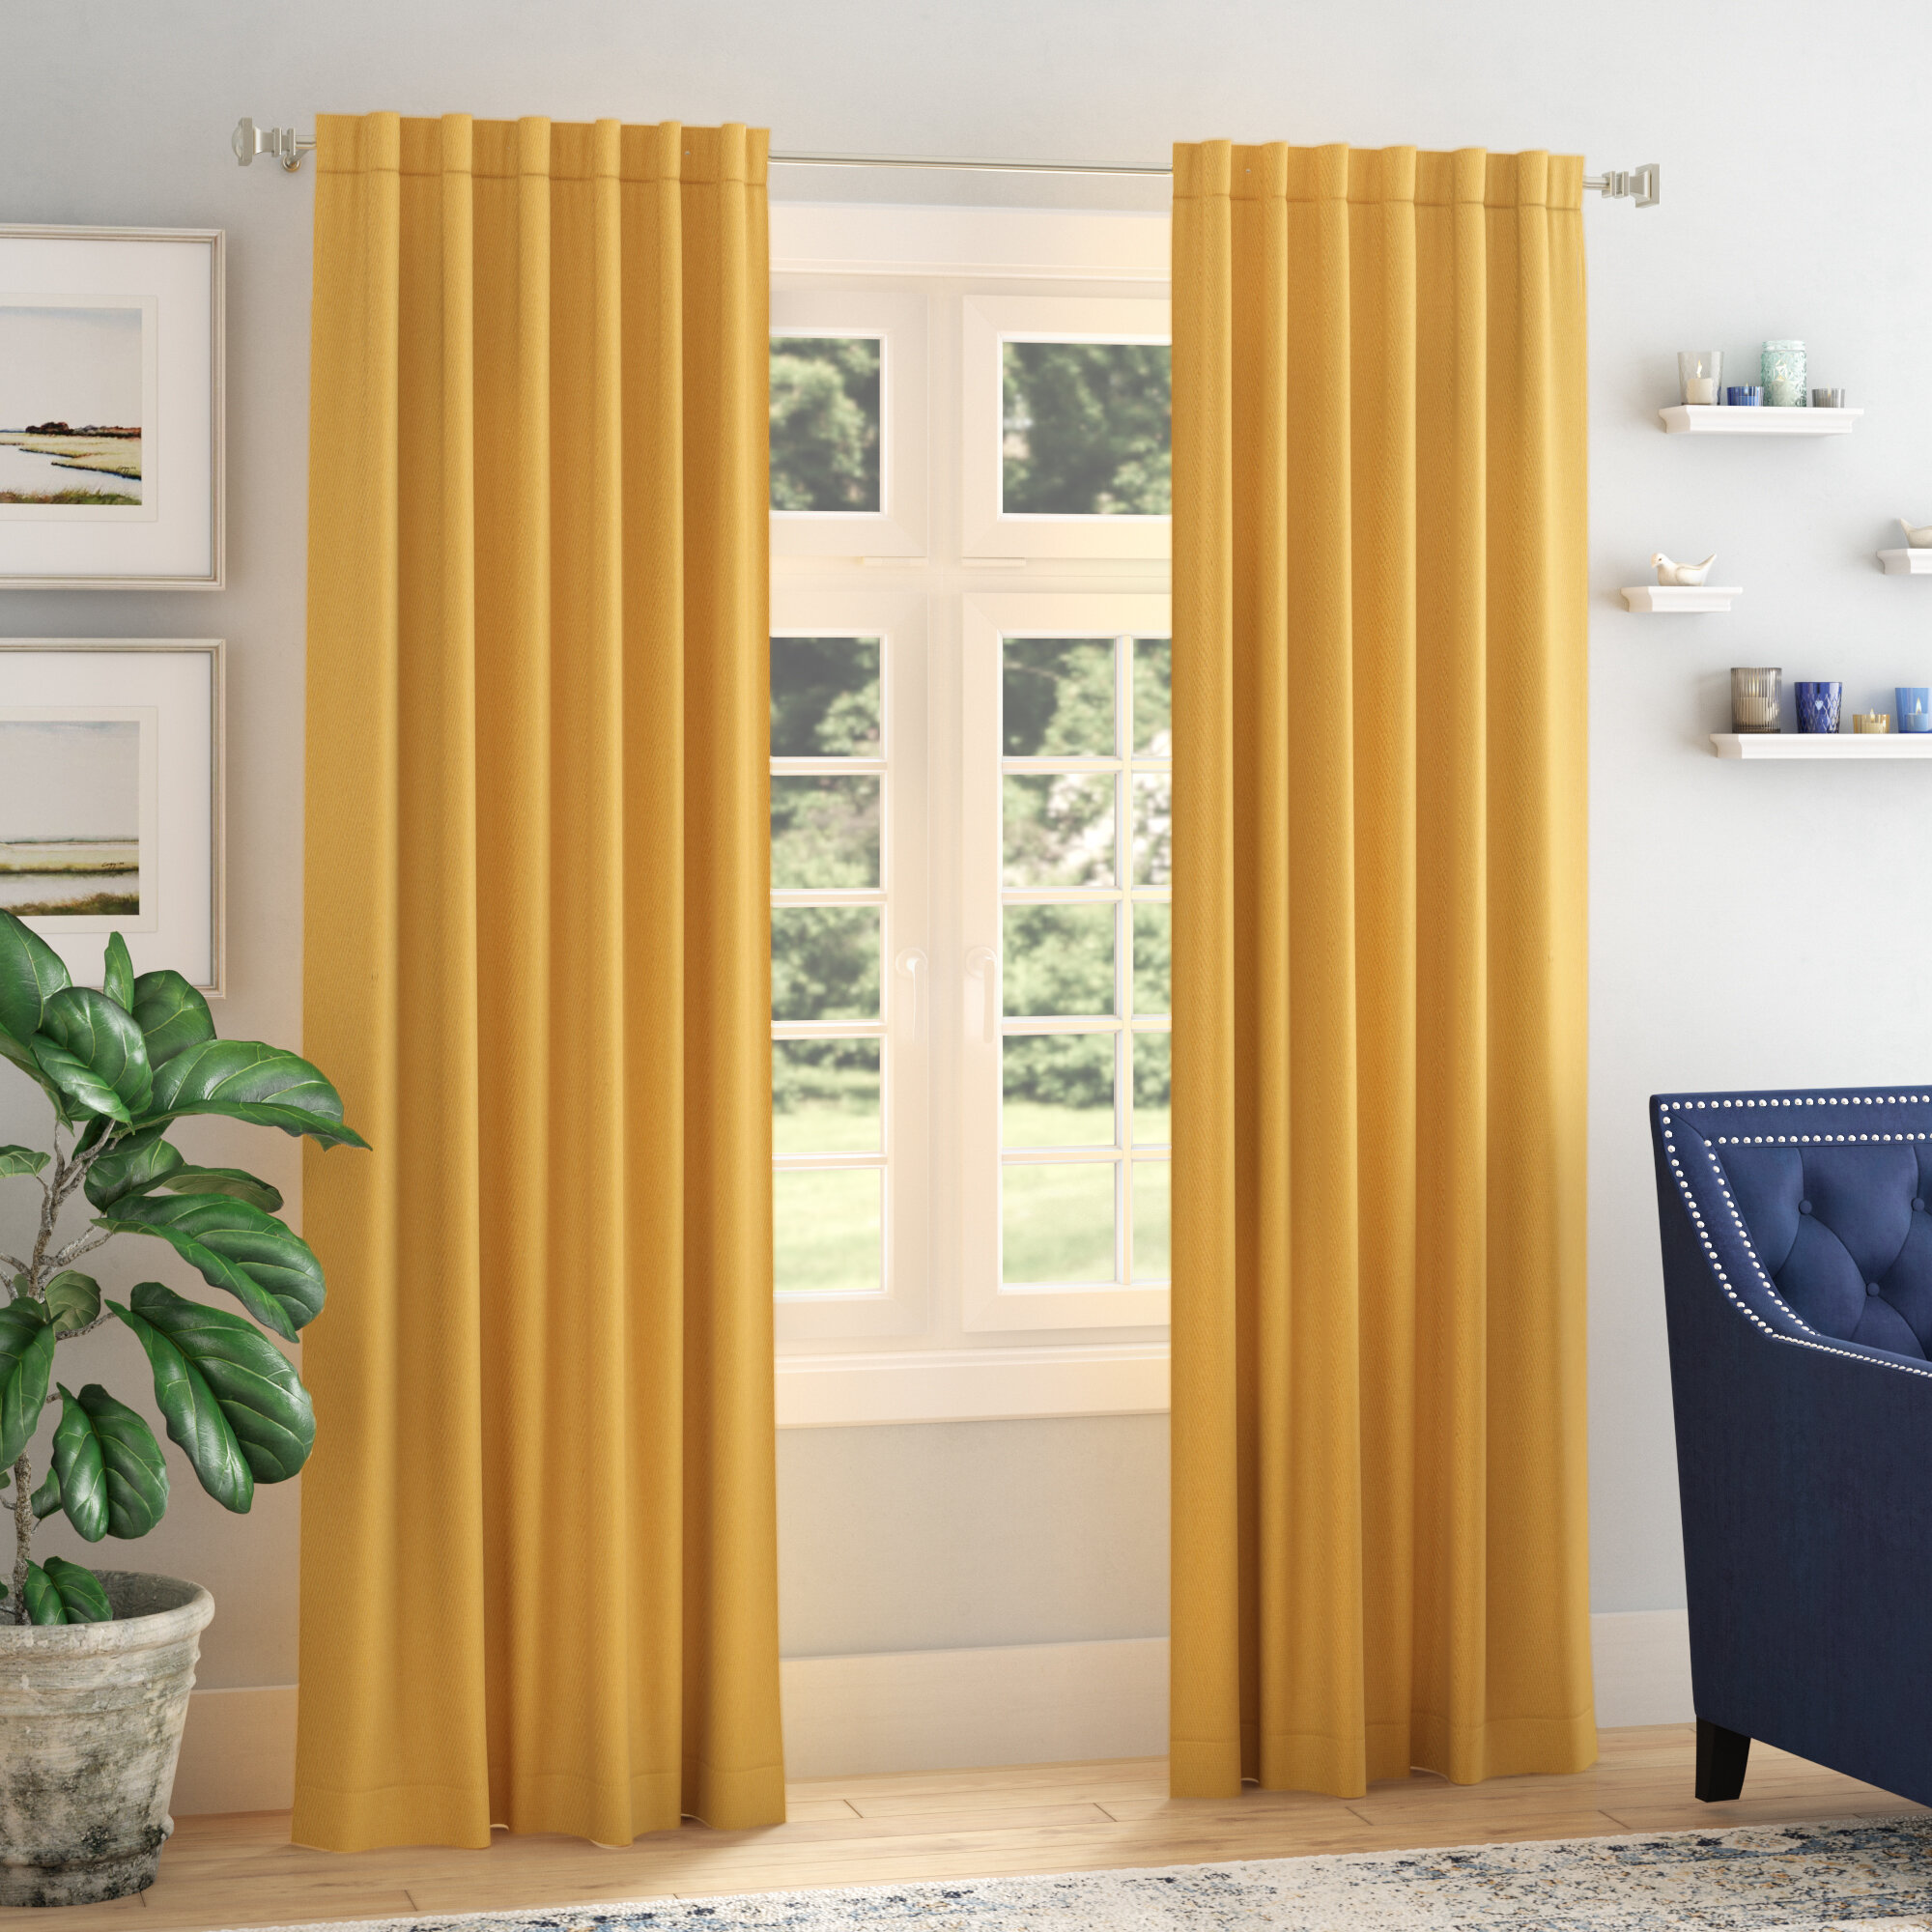 Darby Home Co Destinie Indoor Solid Color Blackout Curtain Rod Pocket Panel Pair Reviews Wayfair